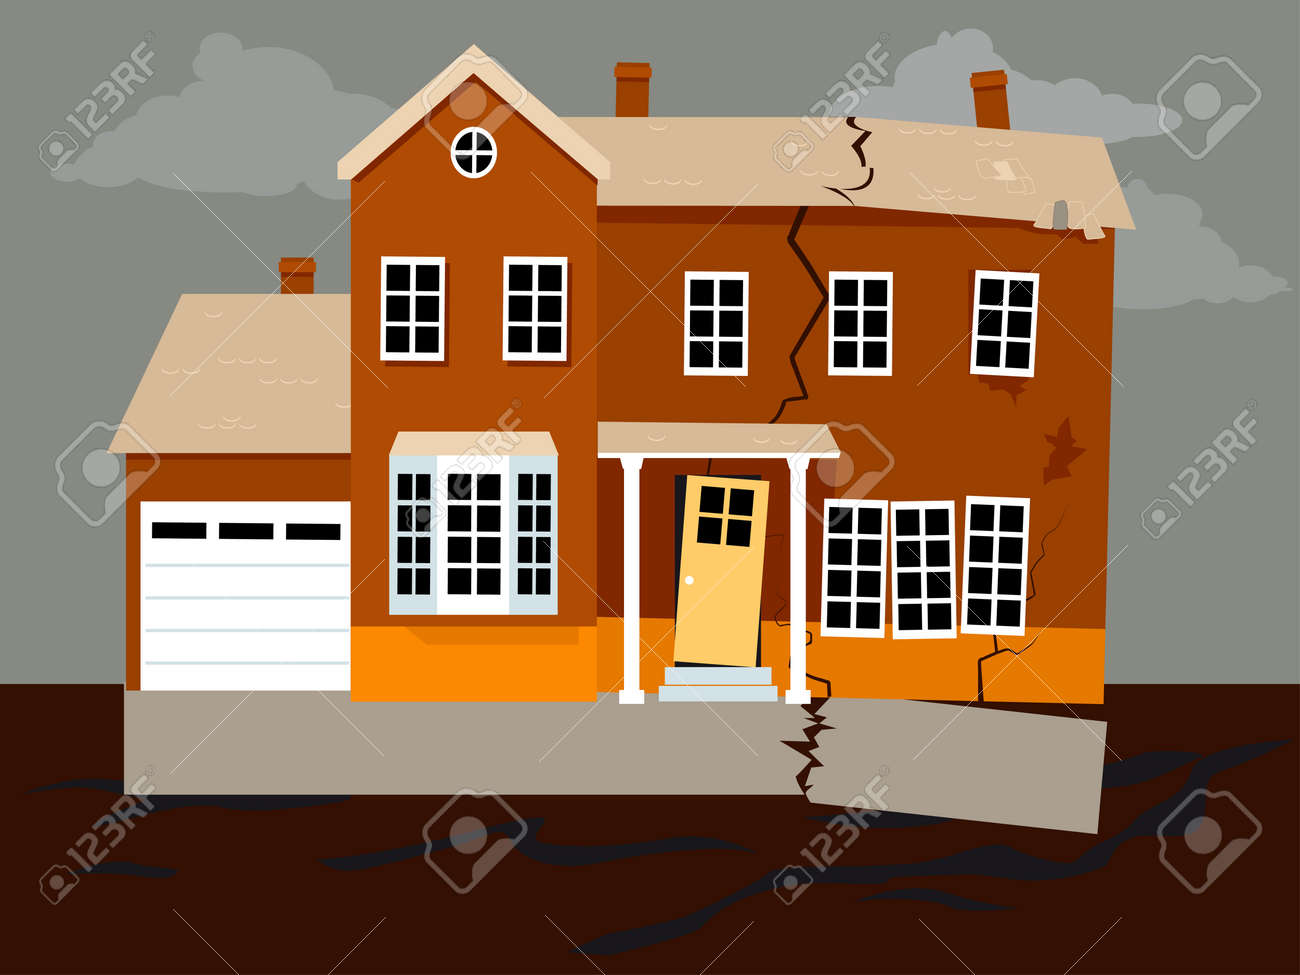 House Falling Apart Because Of A Foundation Failure, EPS 8 Vector  Illustration Stock Vector